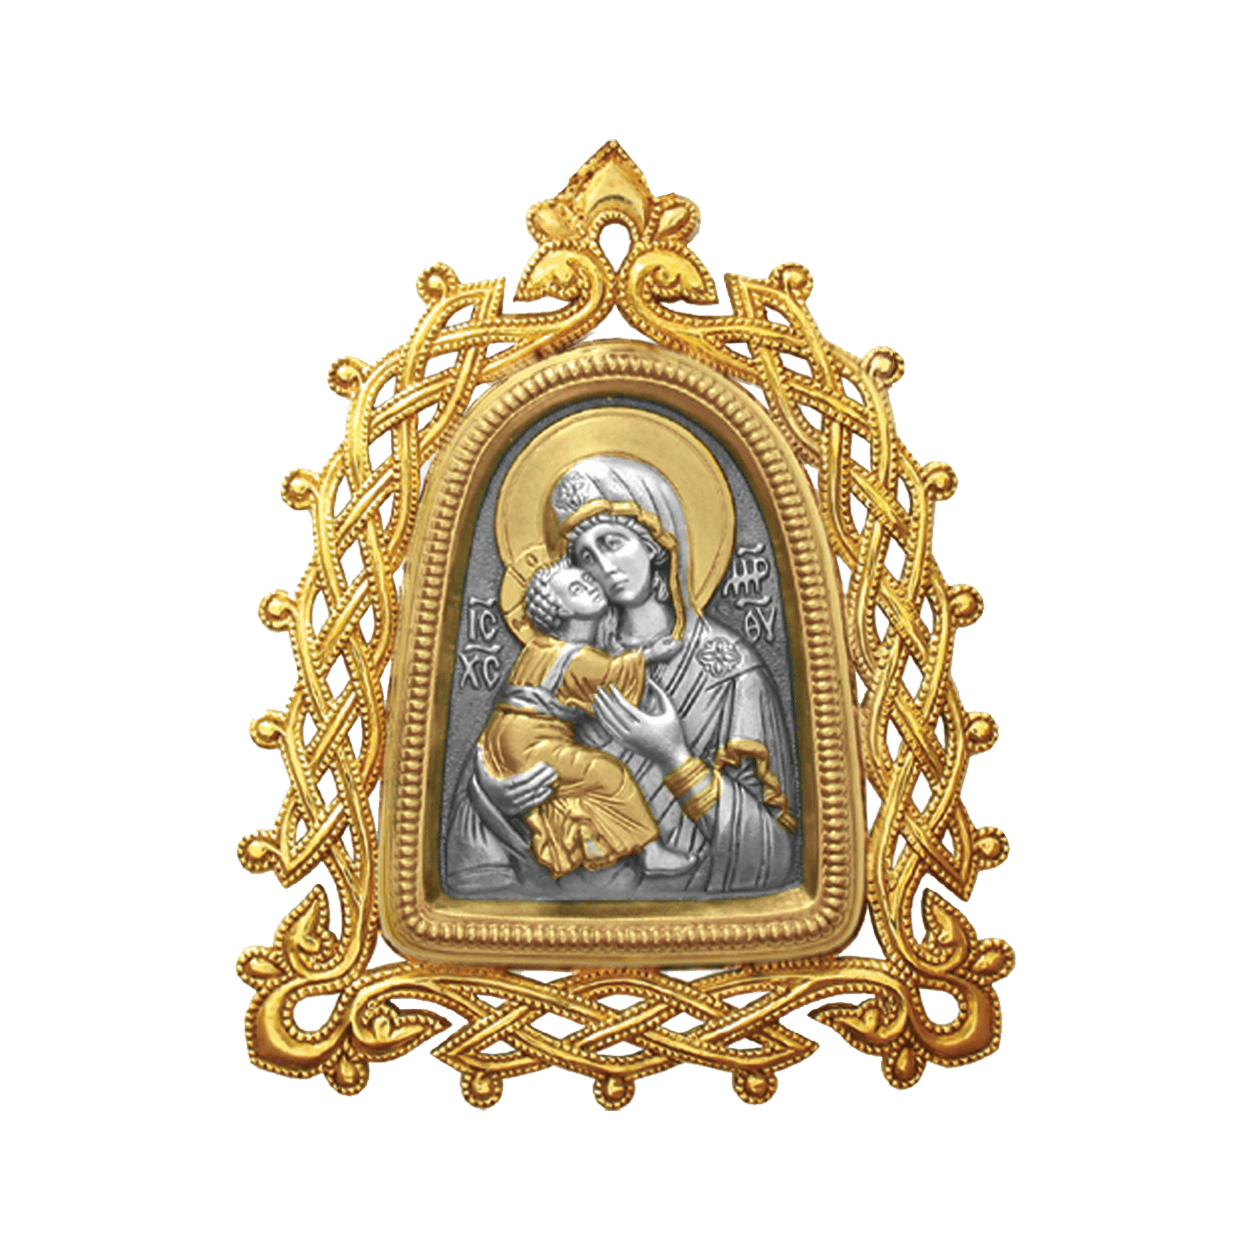 Russian-Orthodox-Icon-silver-medal-pendant-OUR-LADY-OF-VLADIMIR-with-openwork-frame-Master-Jeweler-Fedorov